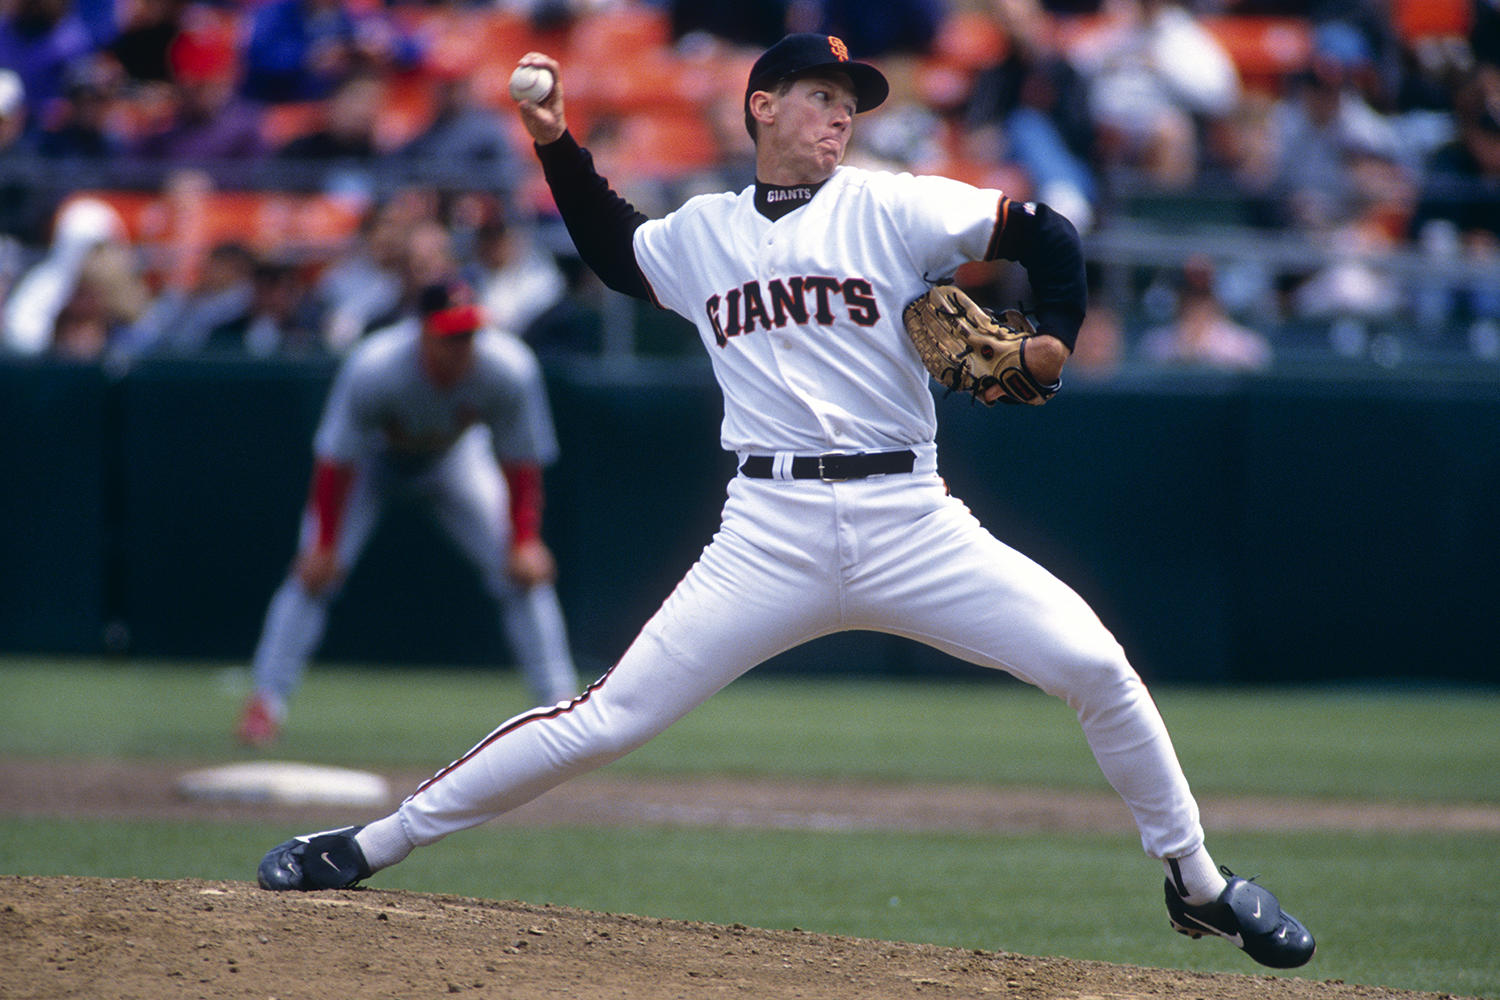 Orel Hershiser pitched for the San Francisco Giants in 1998, after three seasons with the Cleveland Indians and 12 seasons with the Los Angeles Dodgers. (Brad Mangin / National Baseball Hall of Fame)